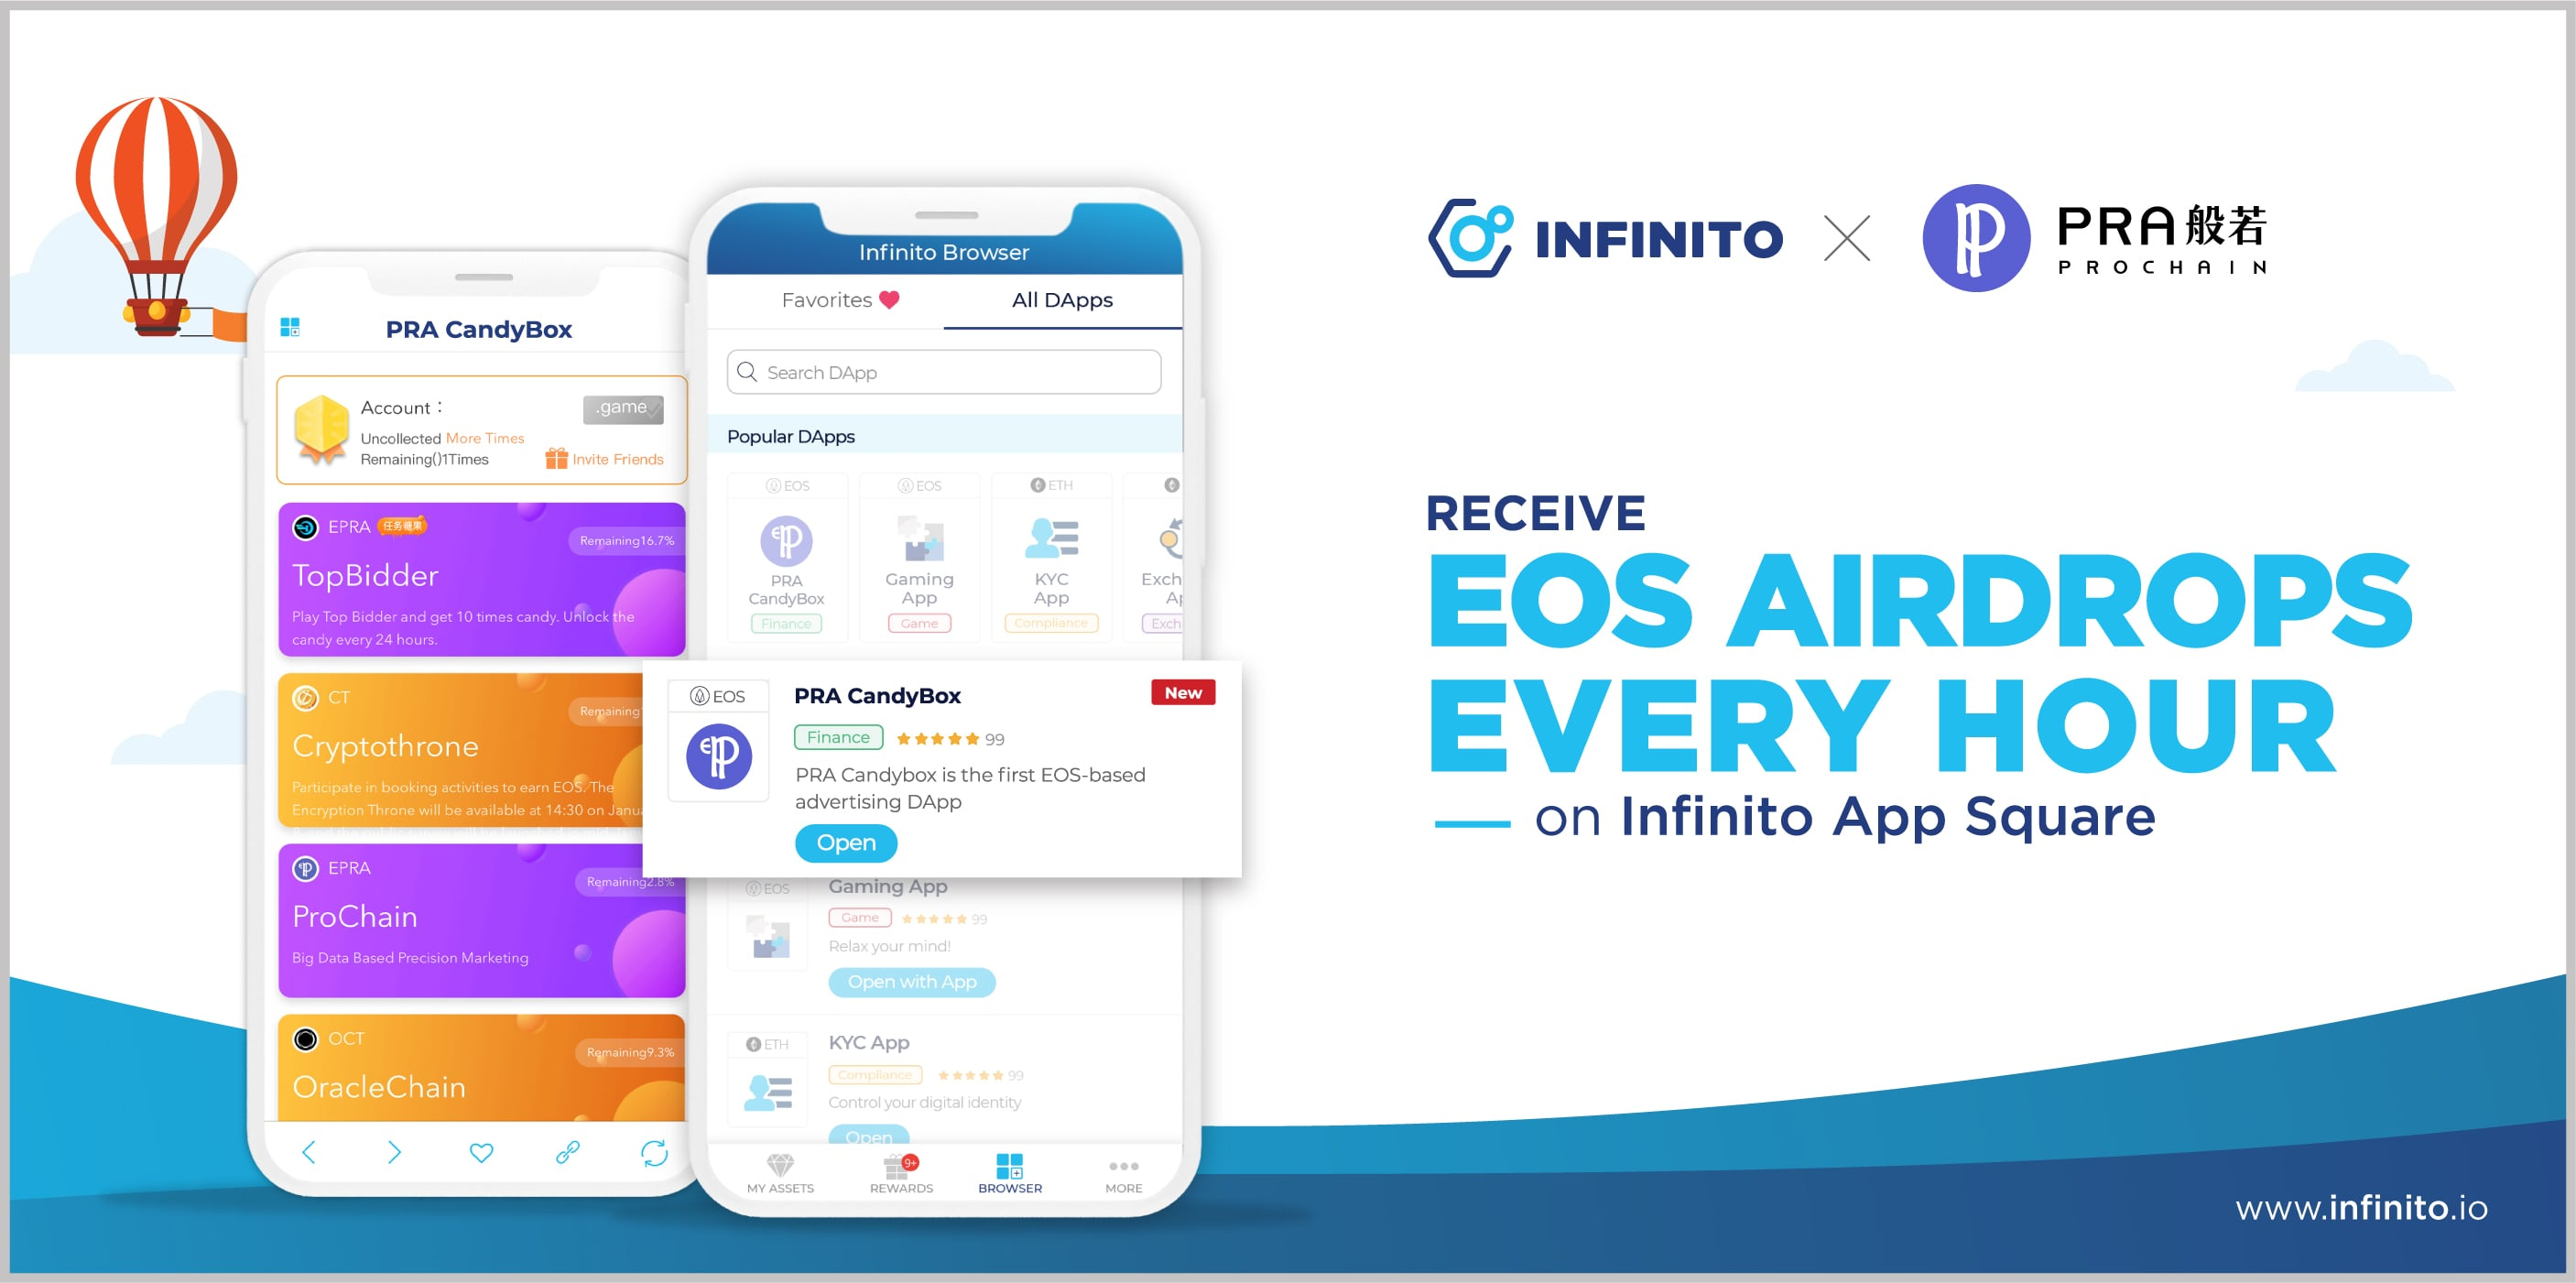 Get EOS Airdrop Token Every Hour Is Now Possible on Infinito